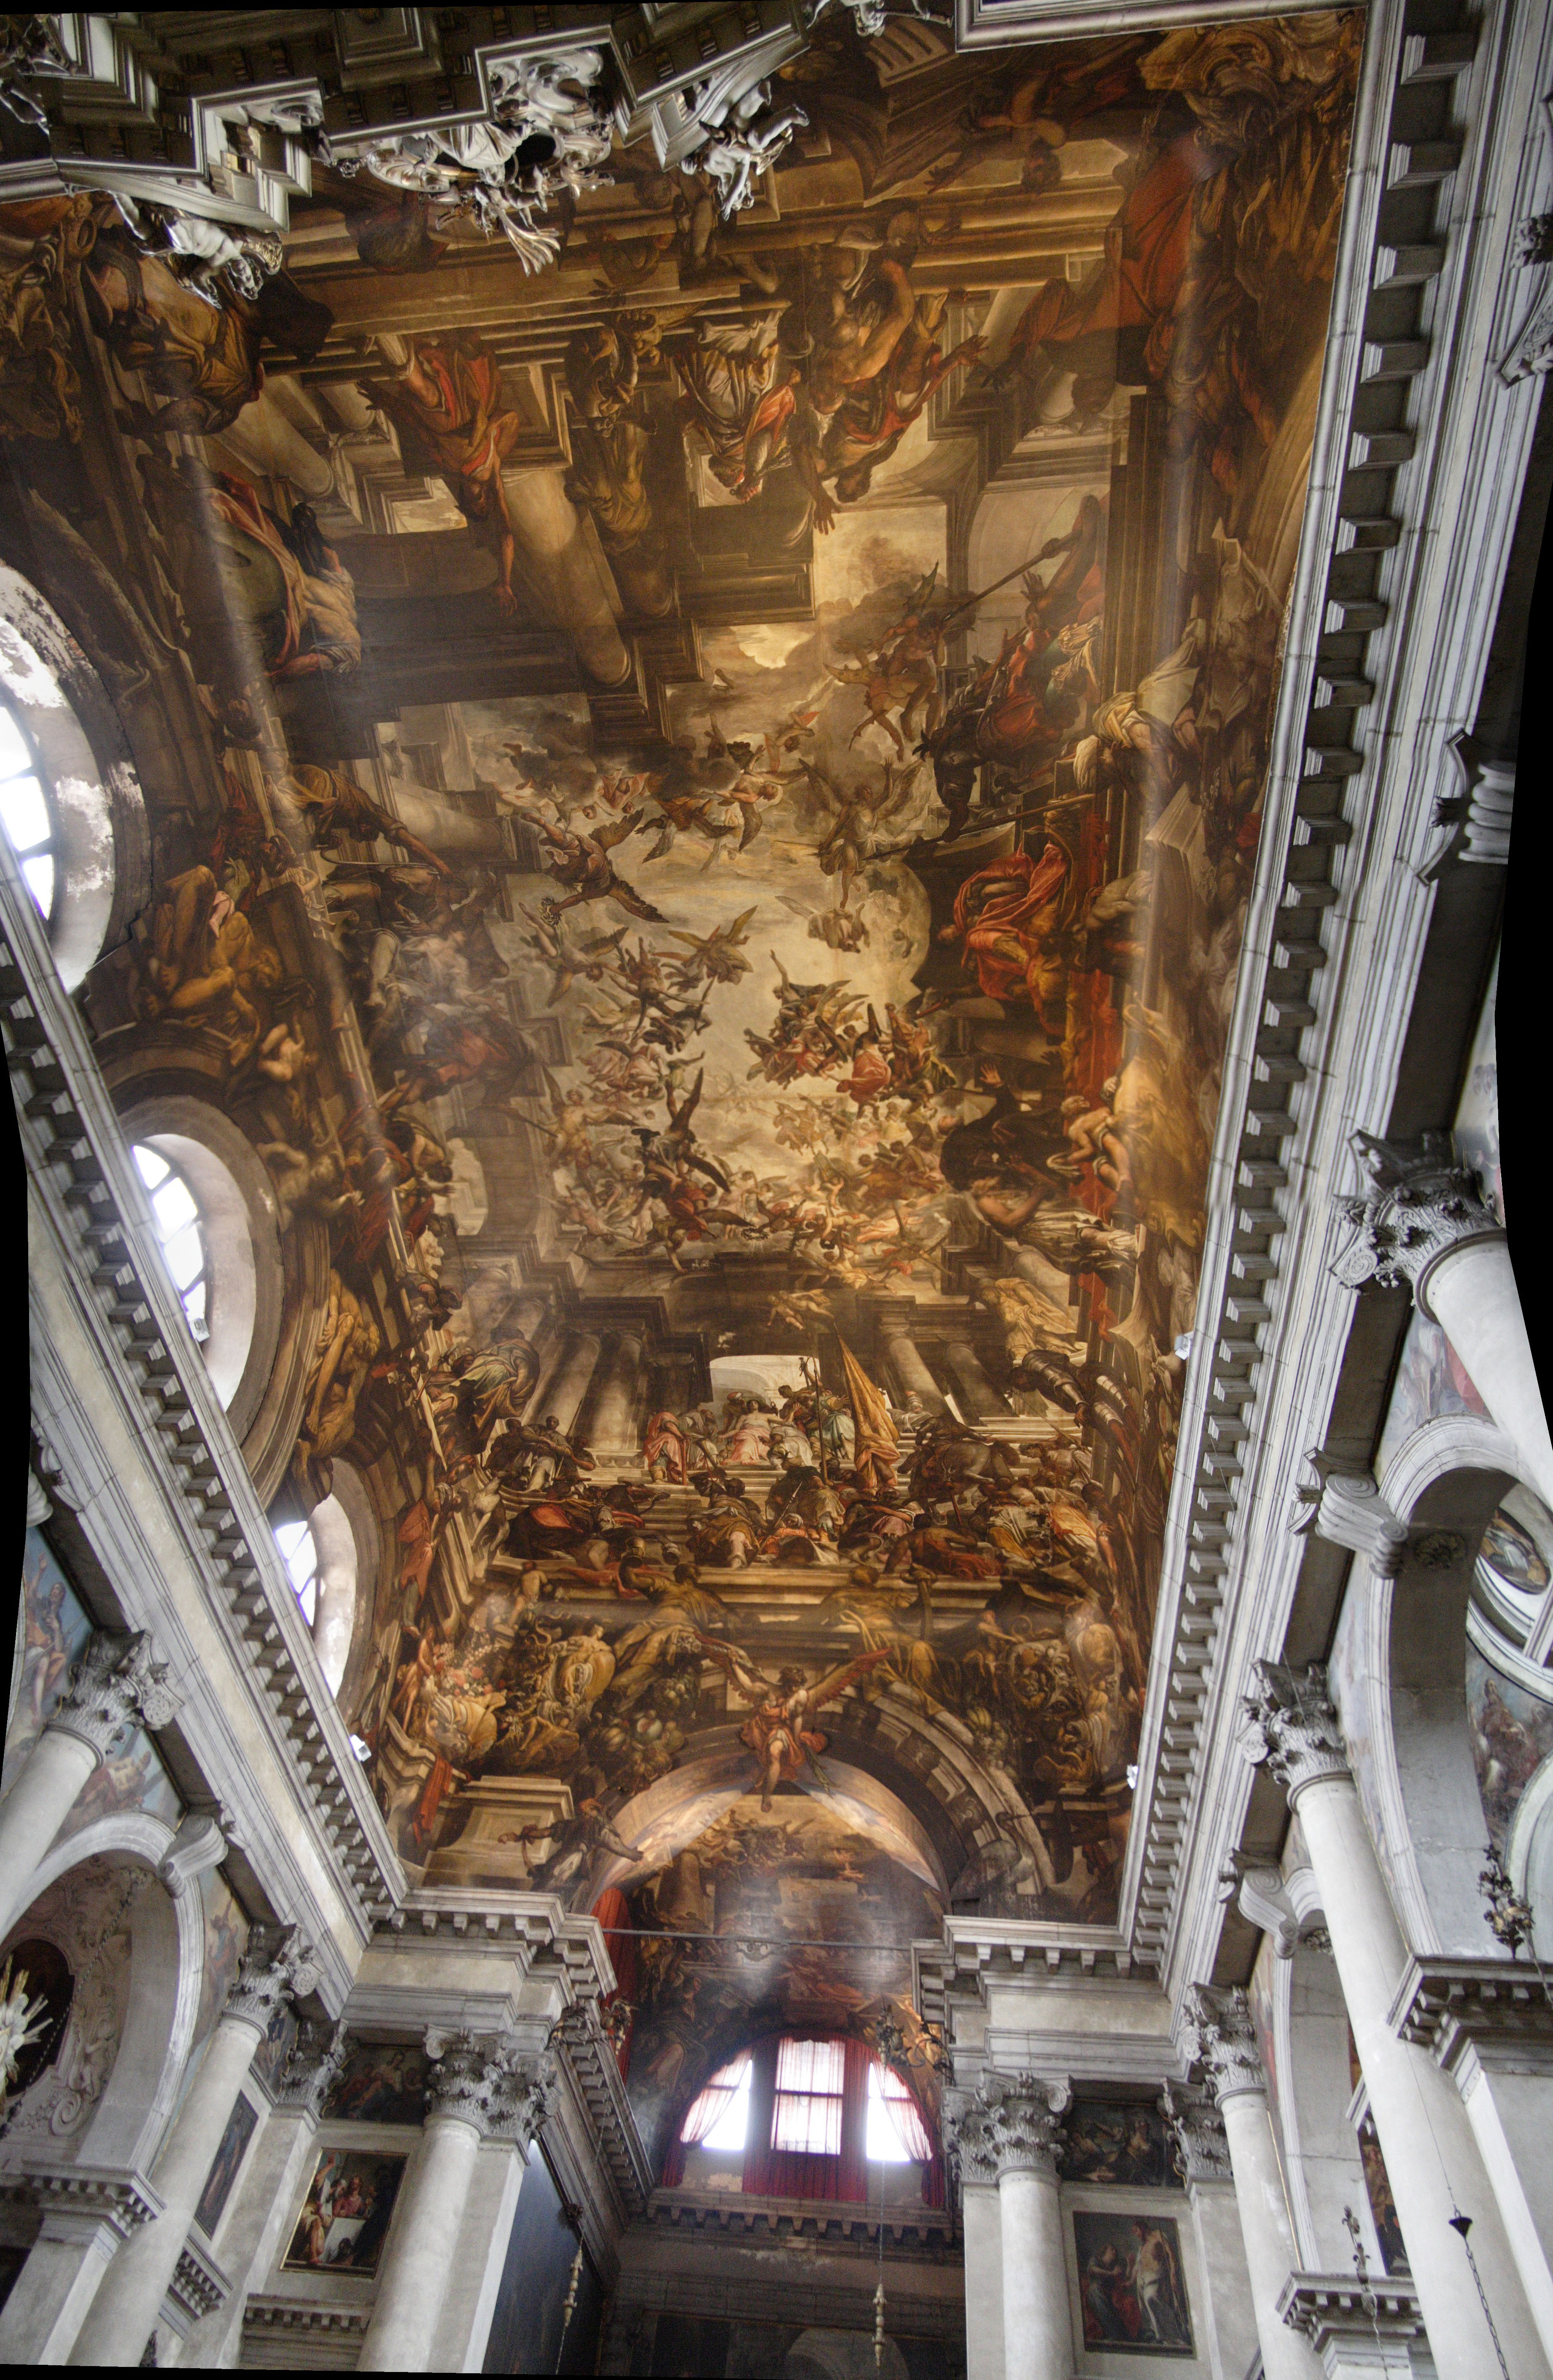 The_Martyrdom_and_Apotheosis_of_St_Panta